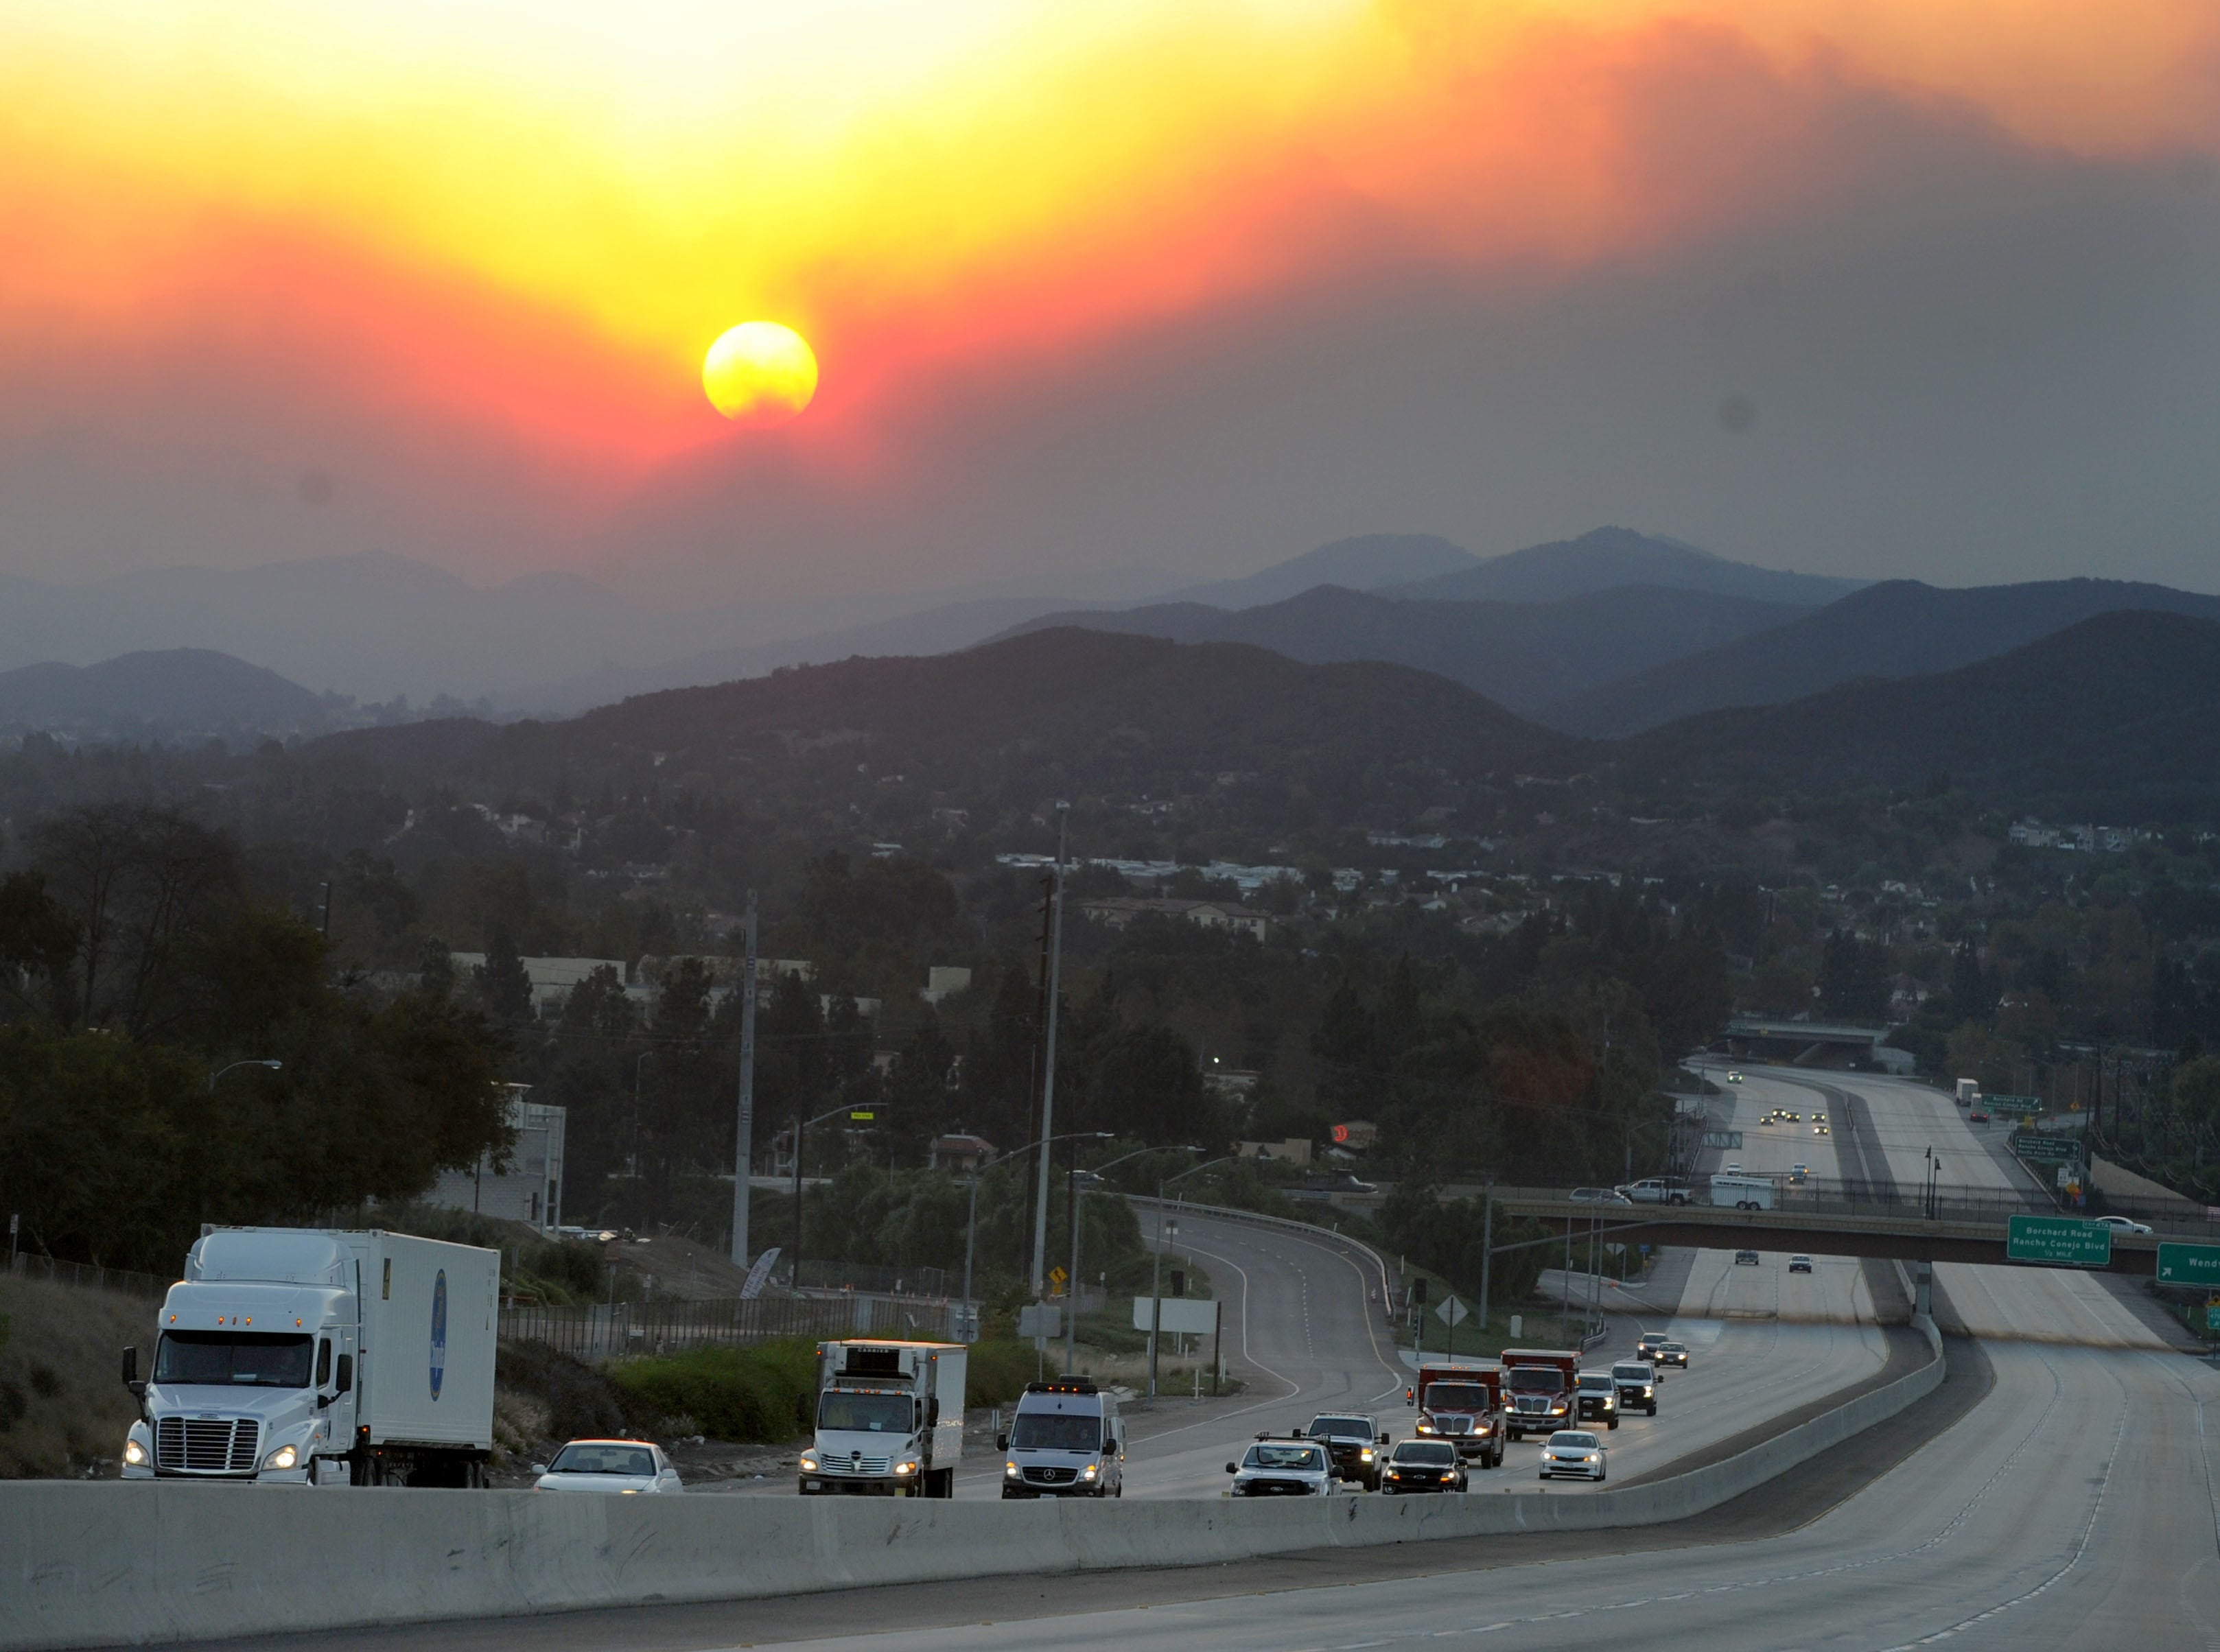 Portions of Highway 101 were closed early Friday because of the Woolsey Fire. The highway later reopened.